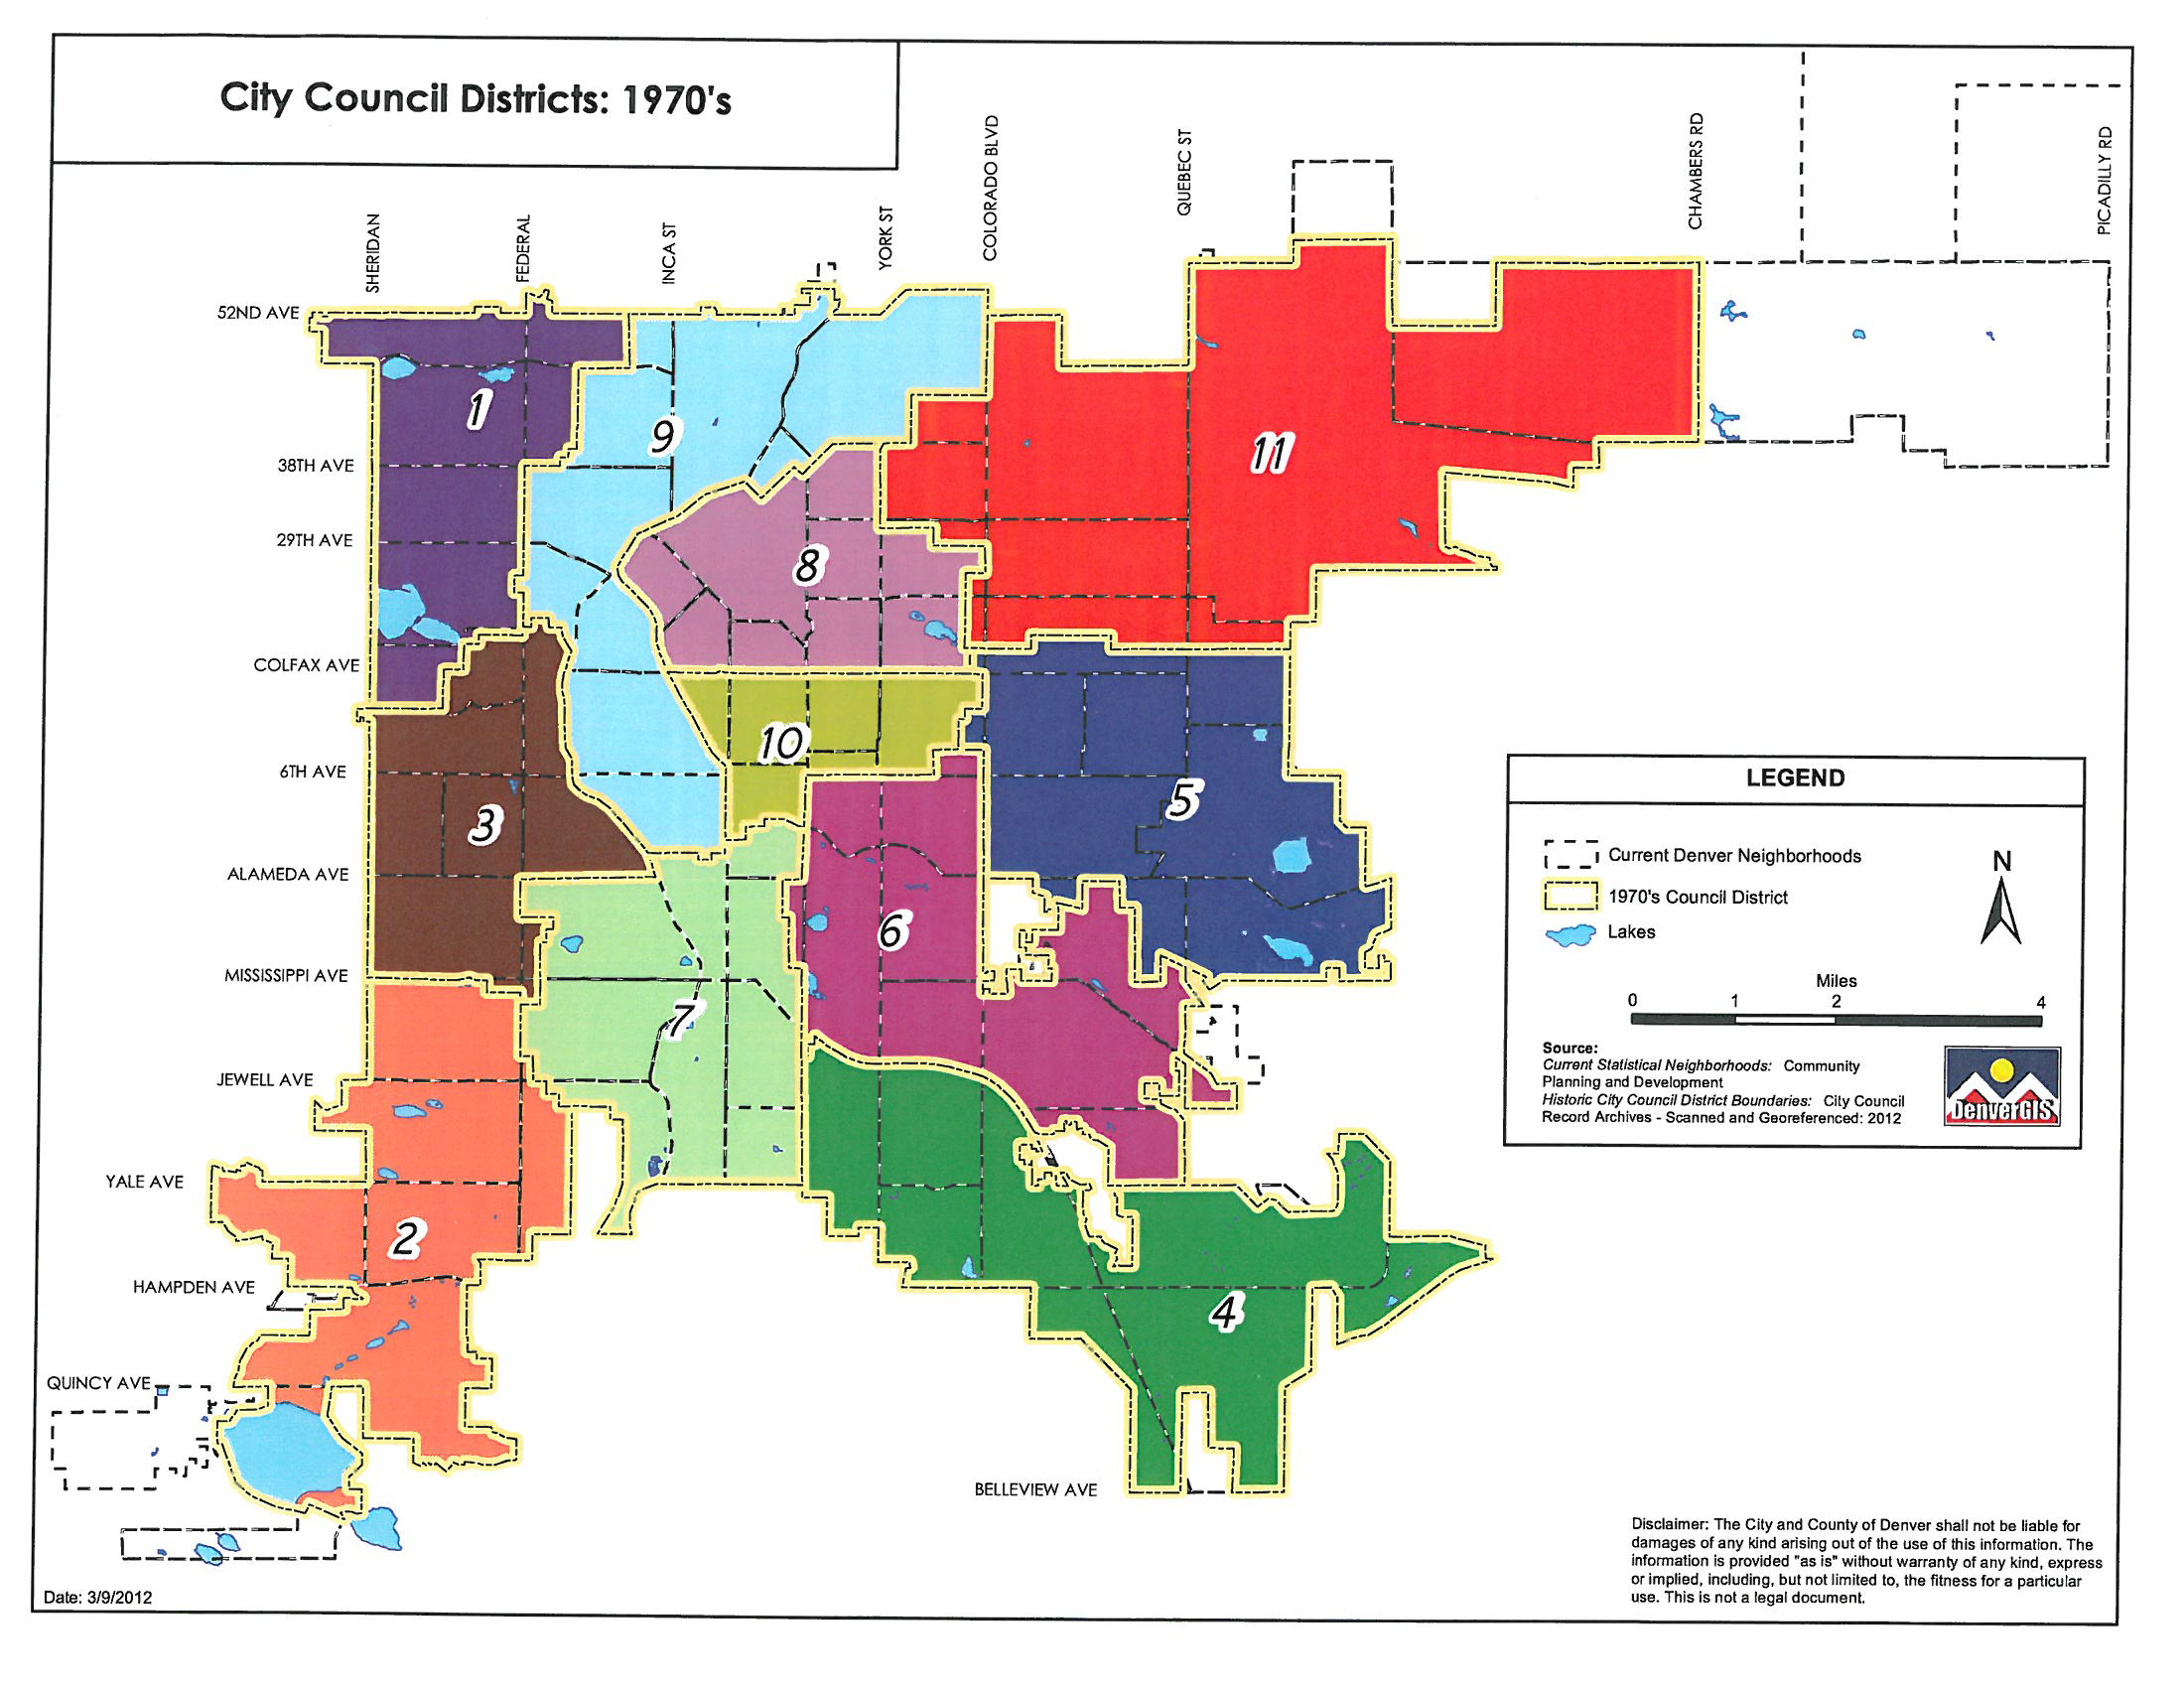 1970's Denver council districts map